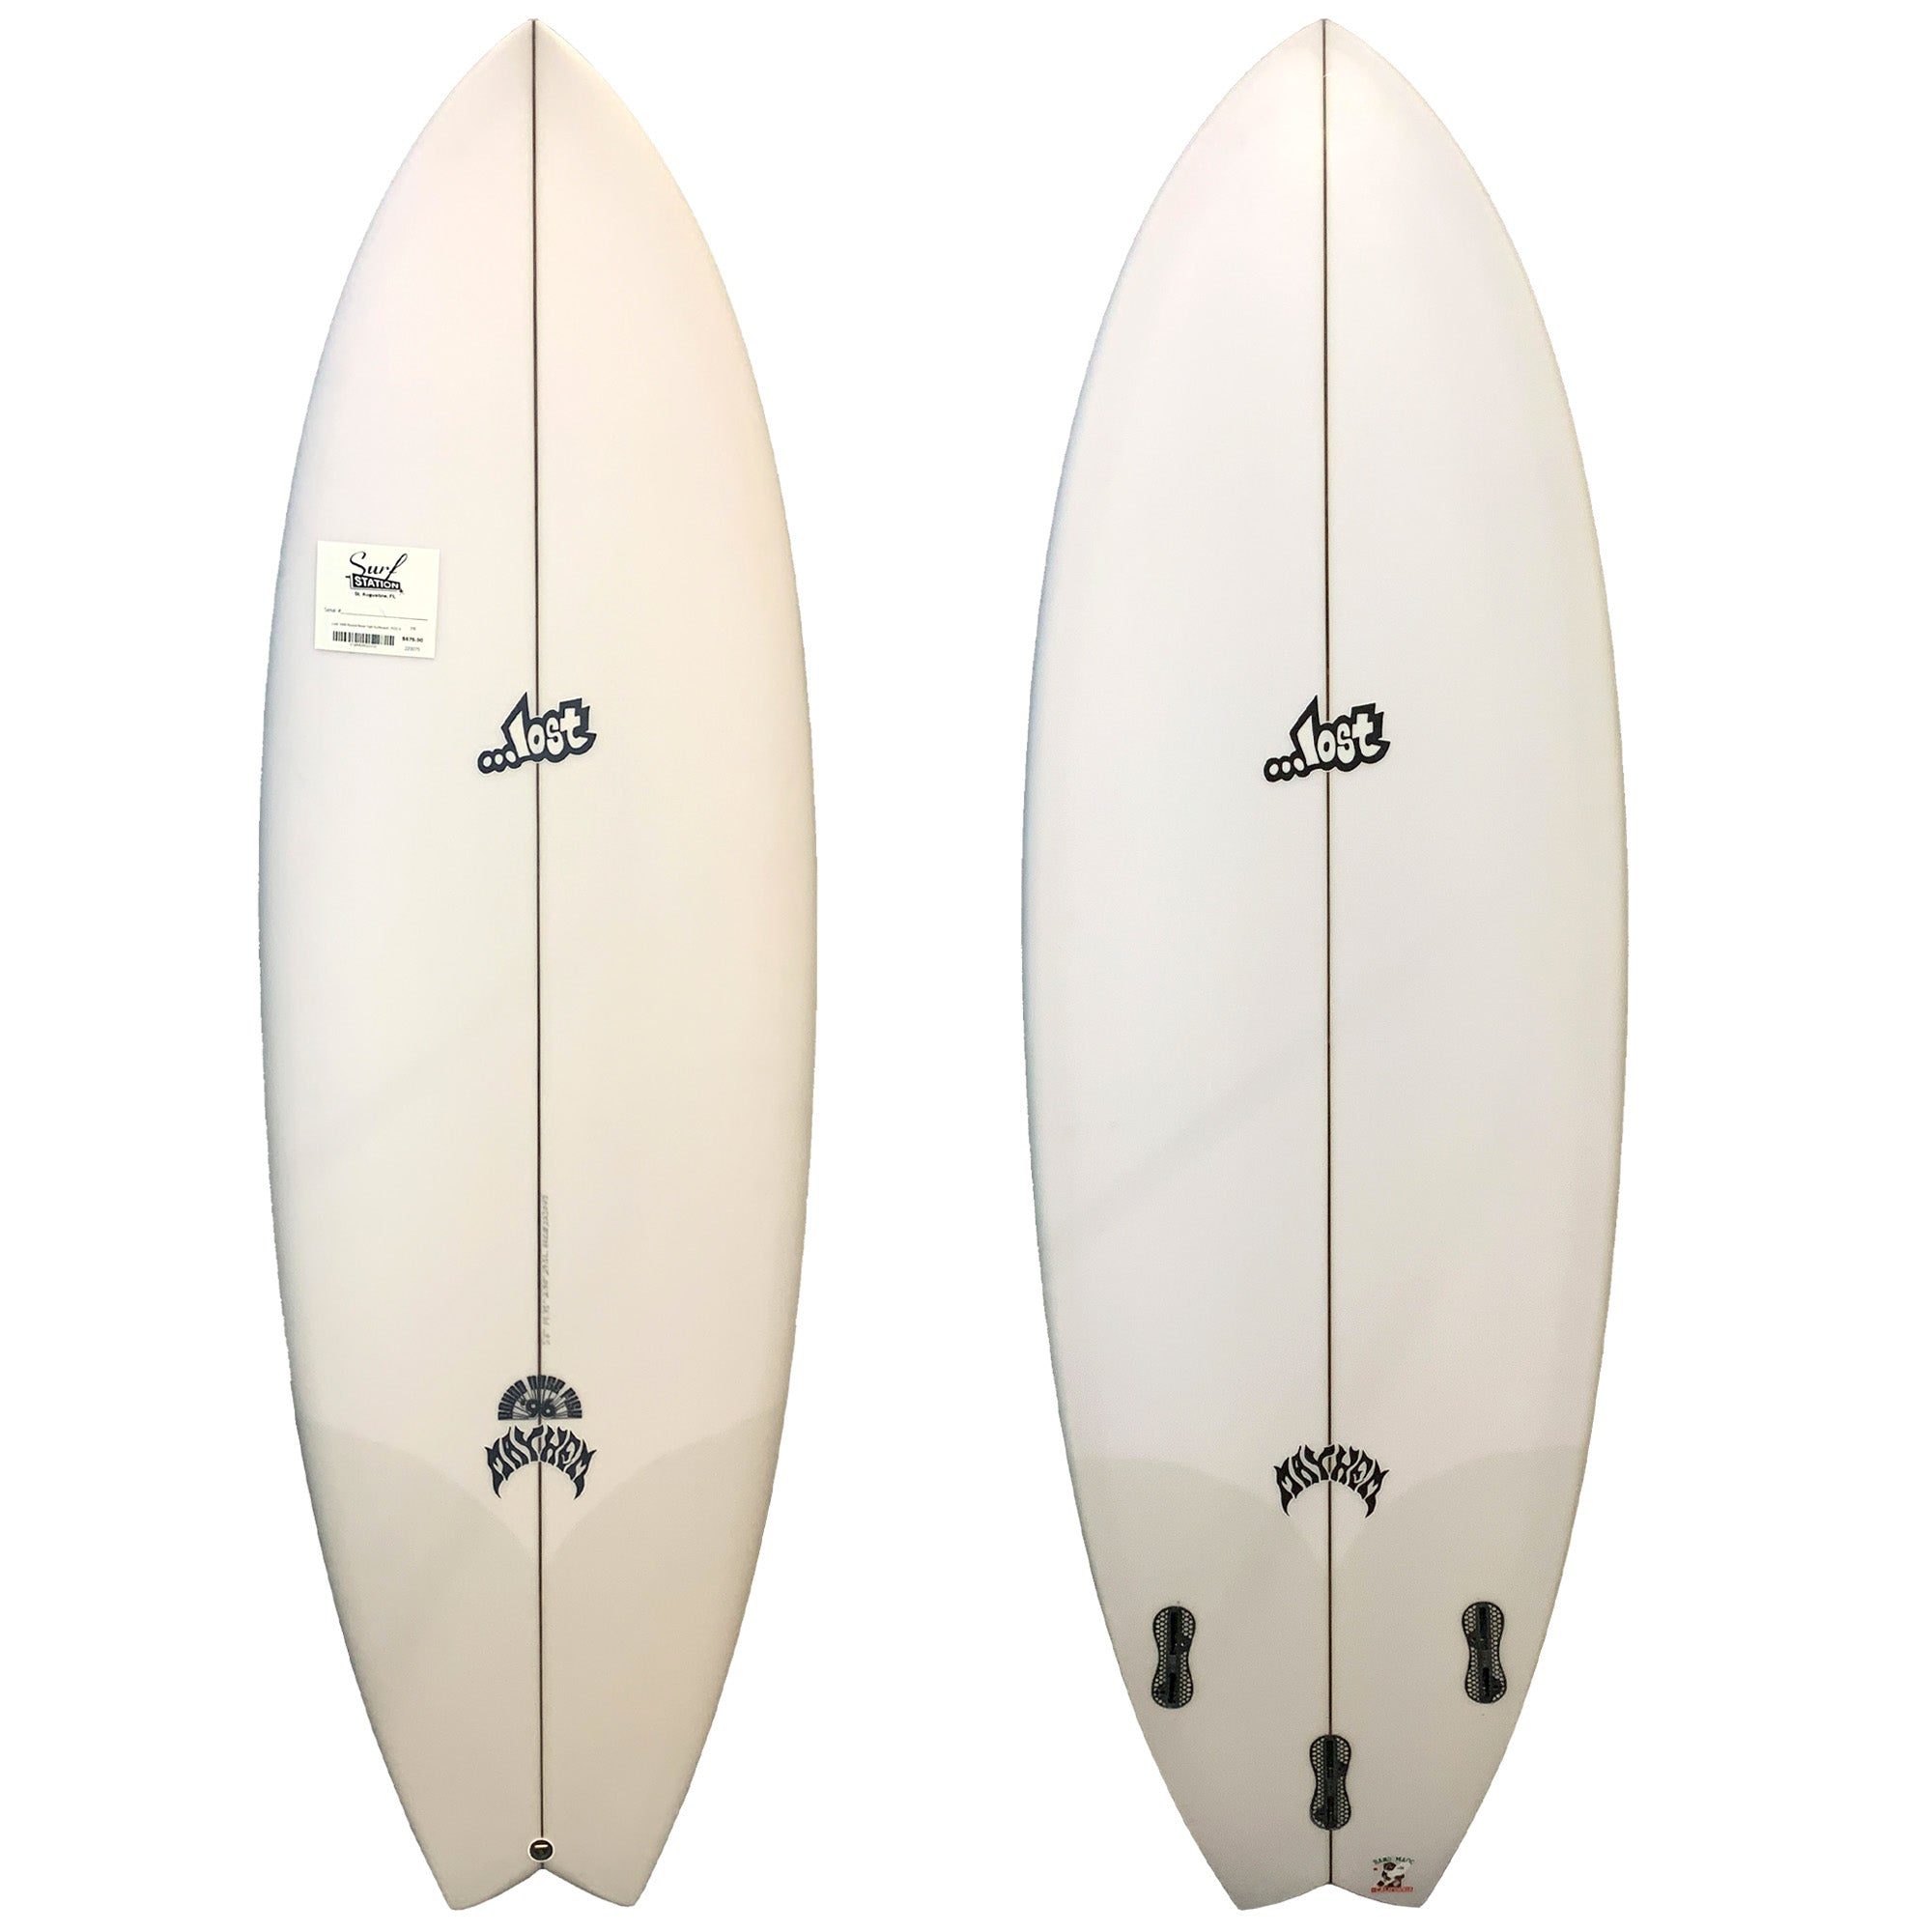 Lost Round Nose Fish '96 Surfboard - FCS II